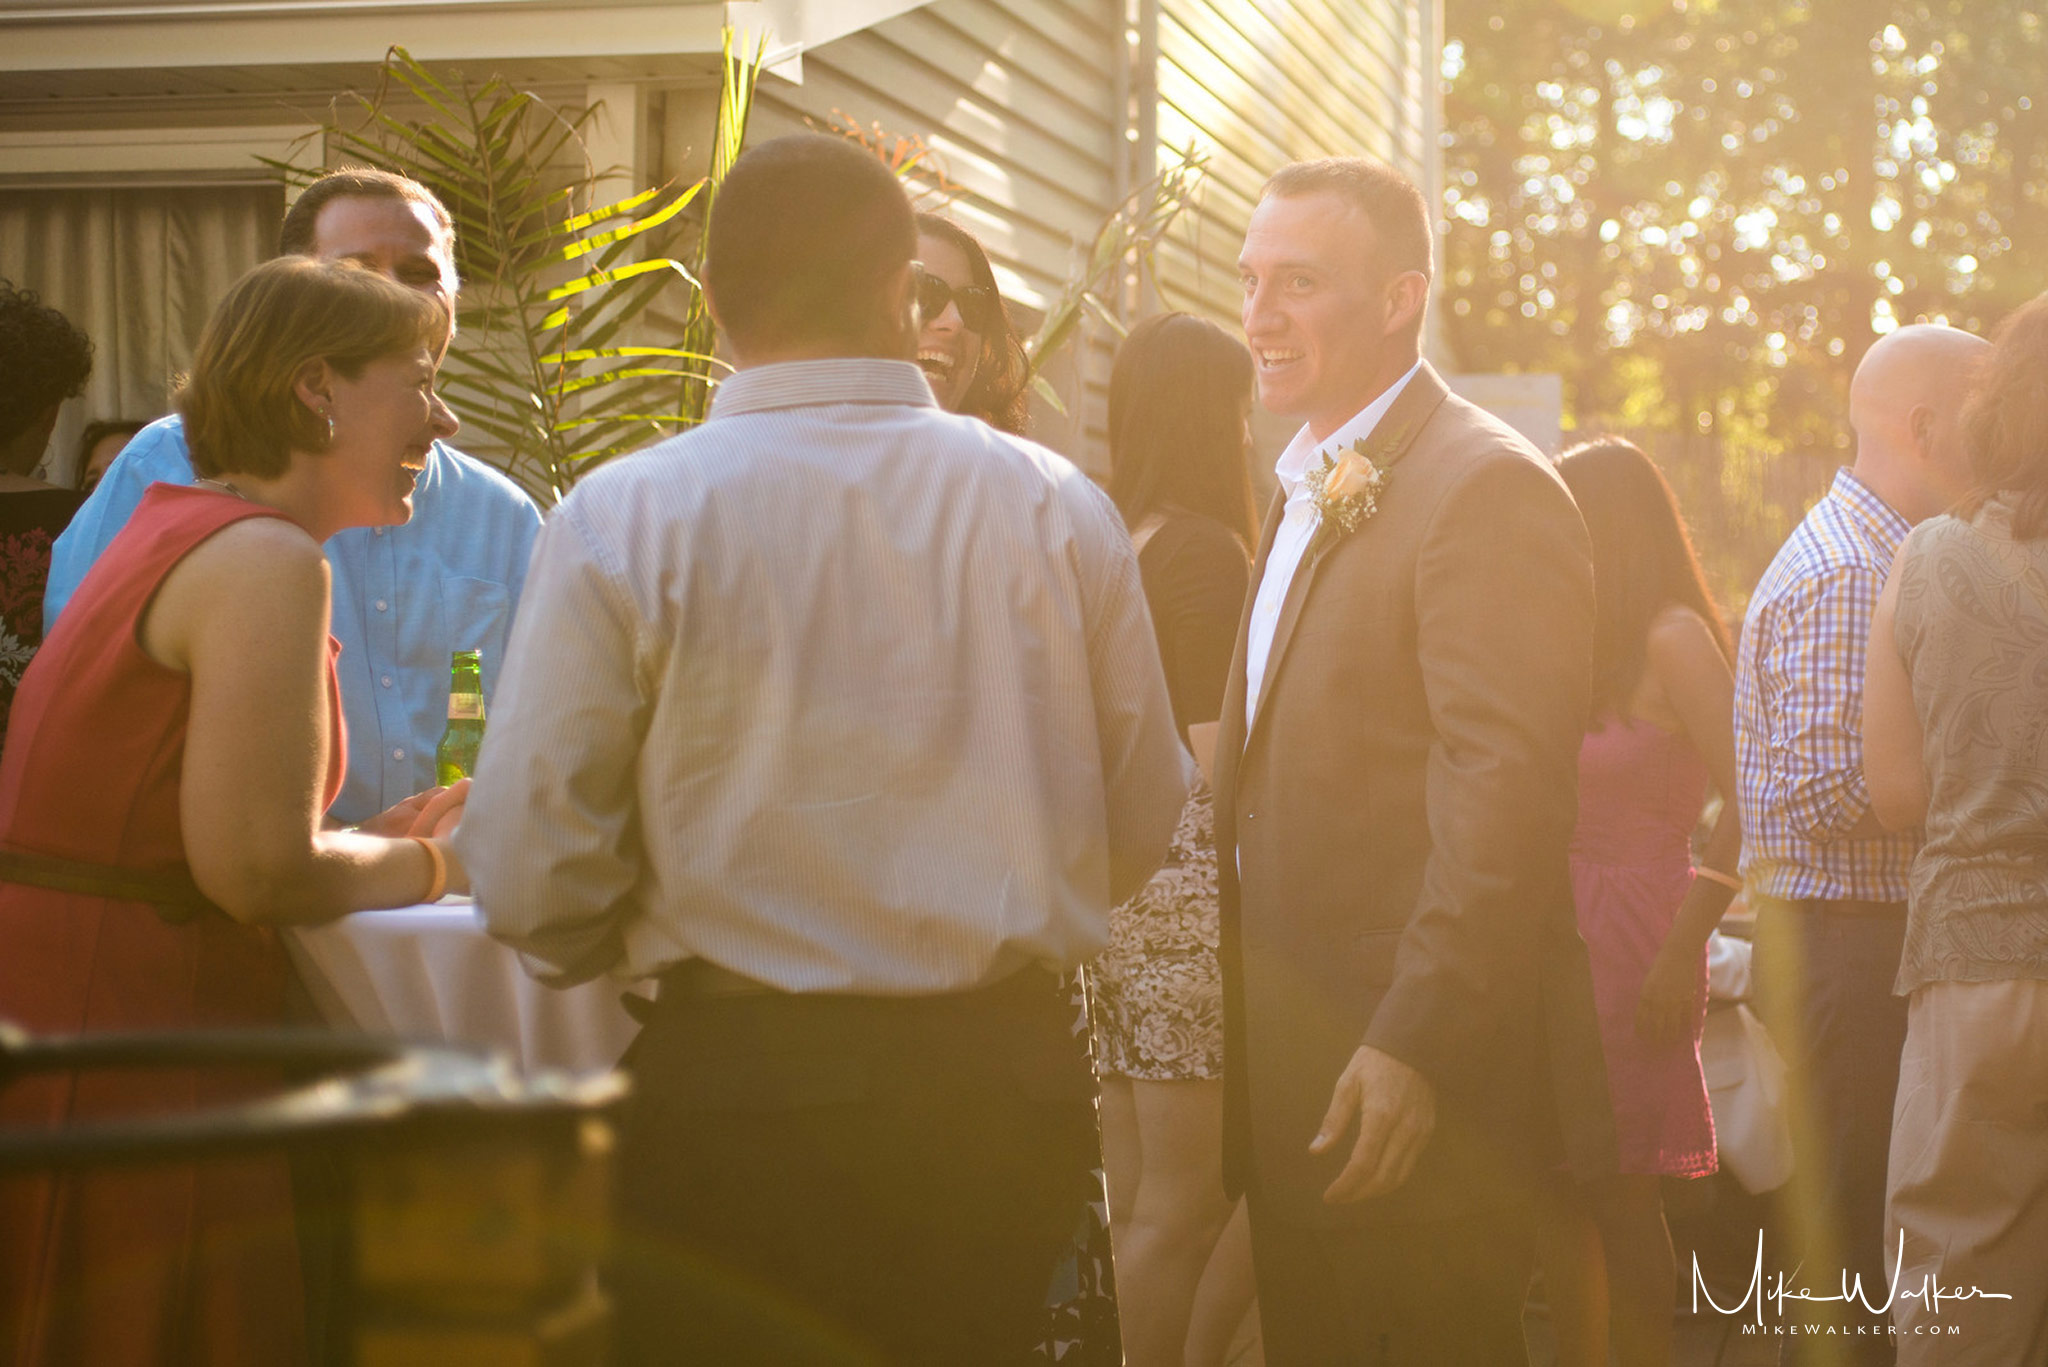 Best man with guests at a wedding. Wedding photographer Mike Walker.